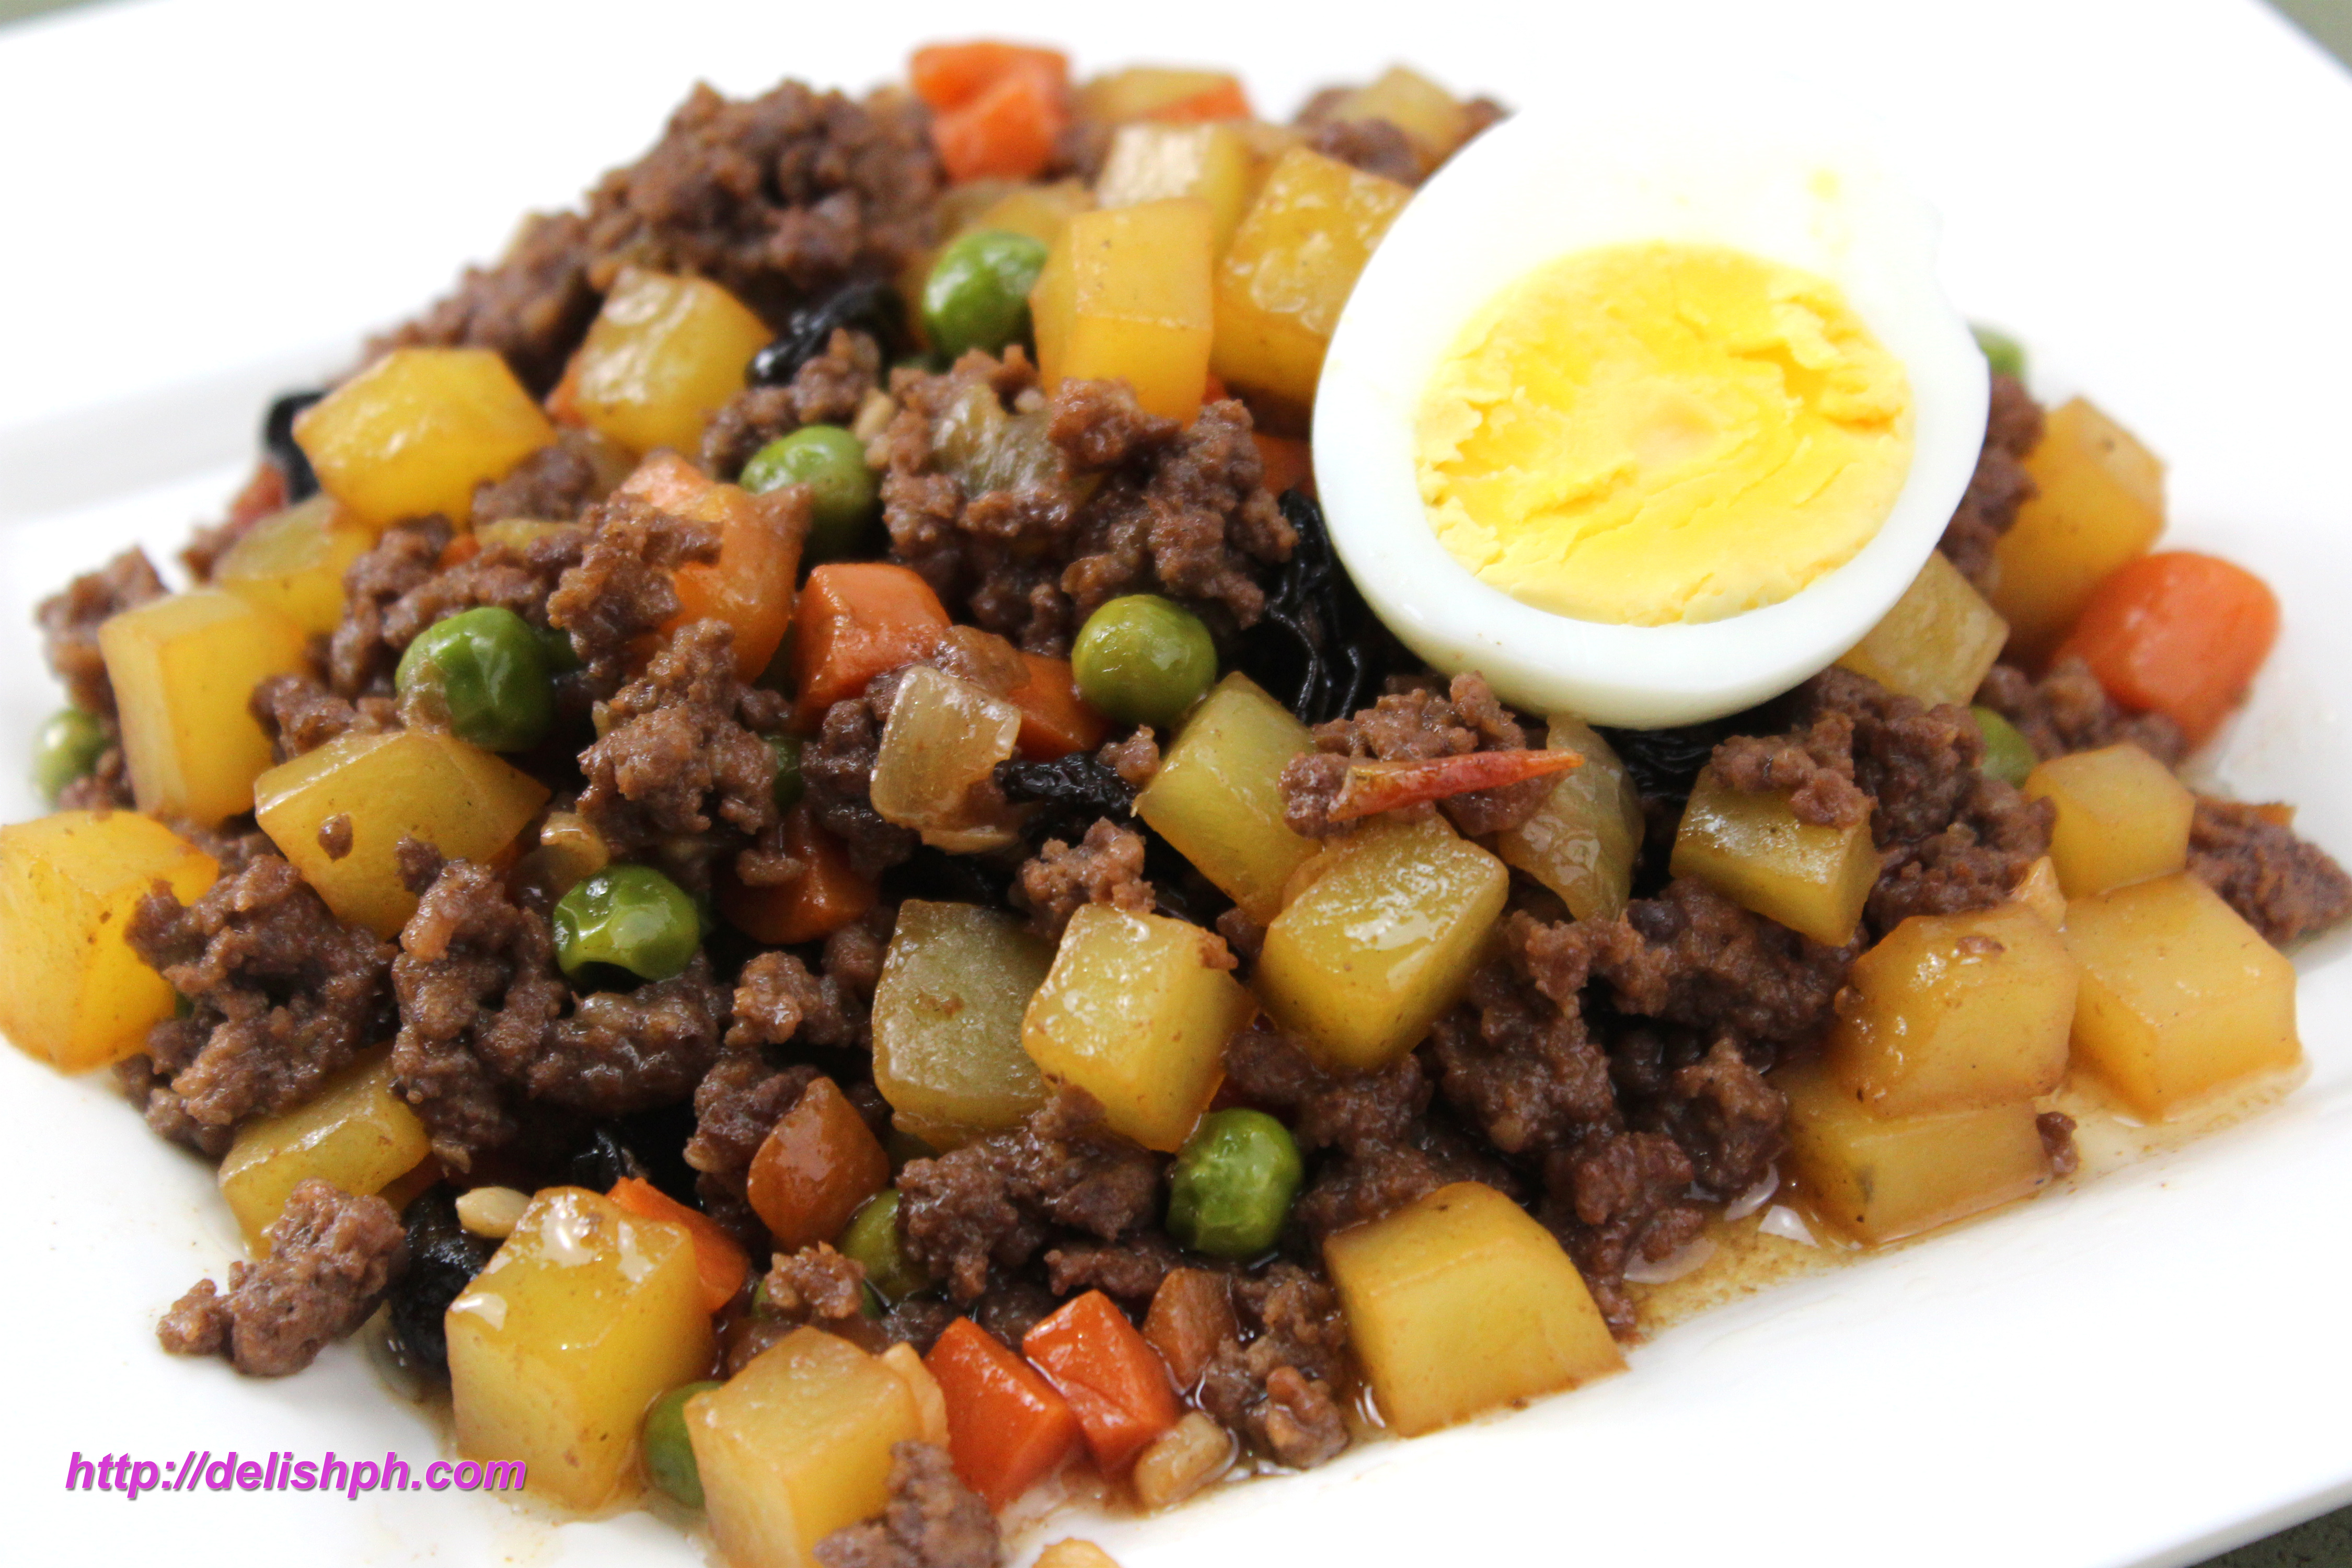 Top Baon Packed Lunch Recipes To Try Delish Ph